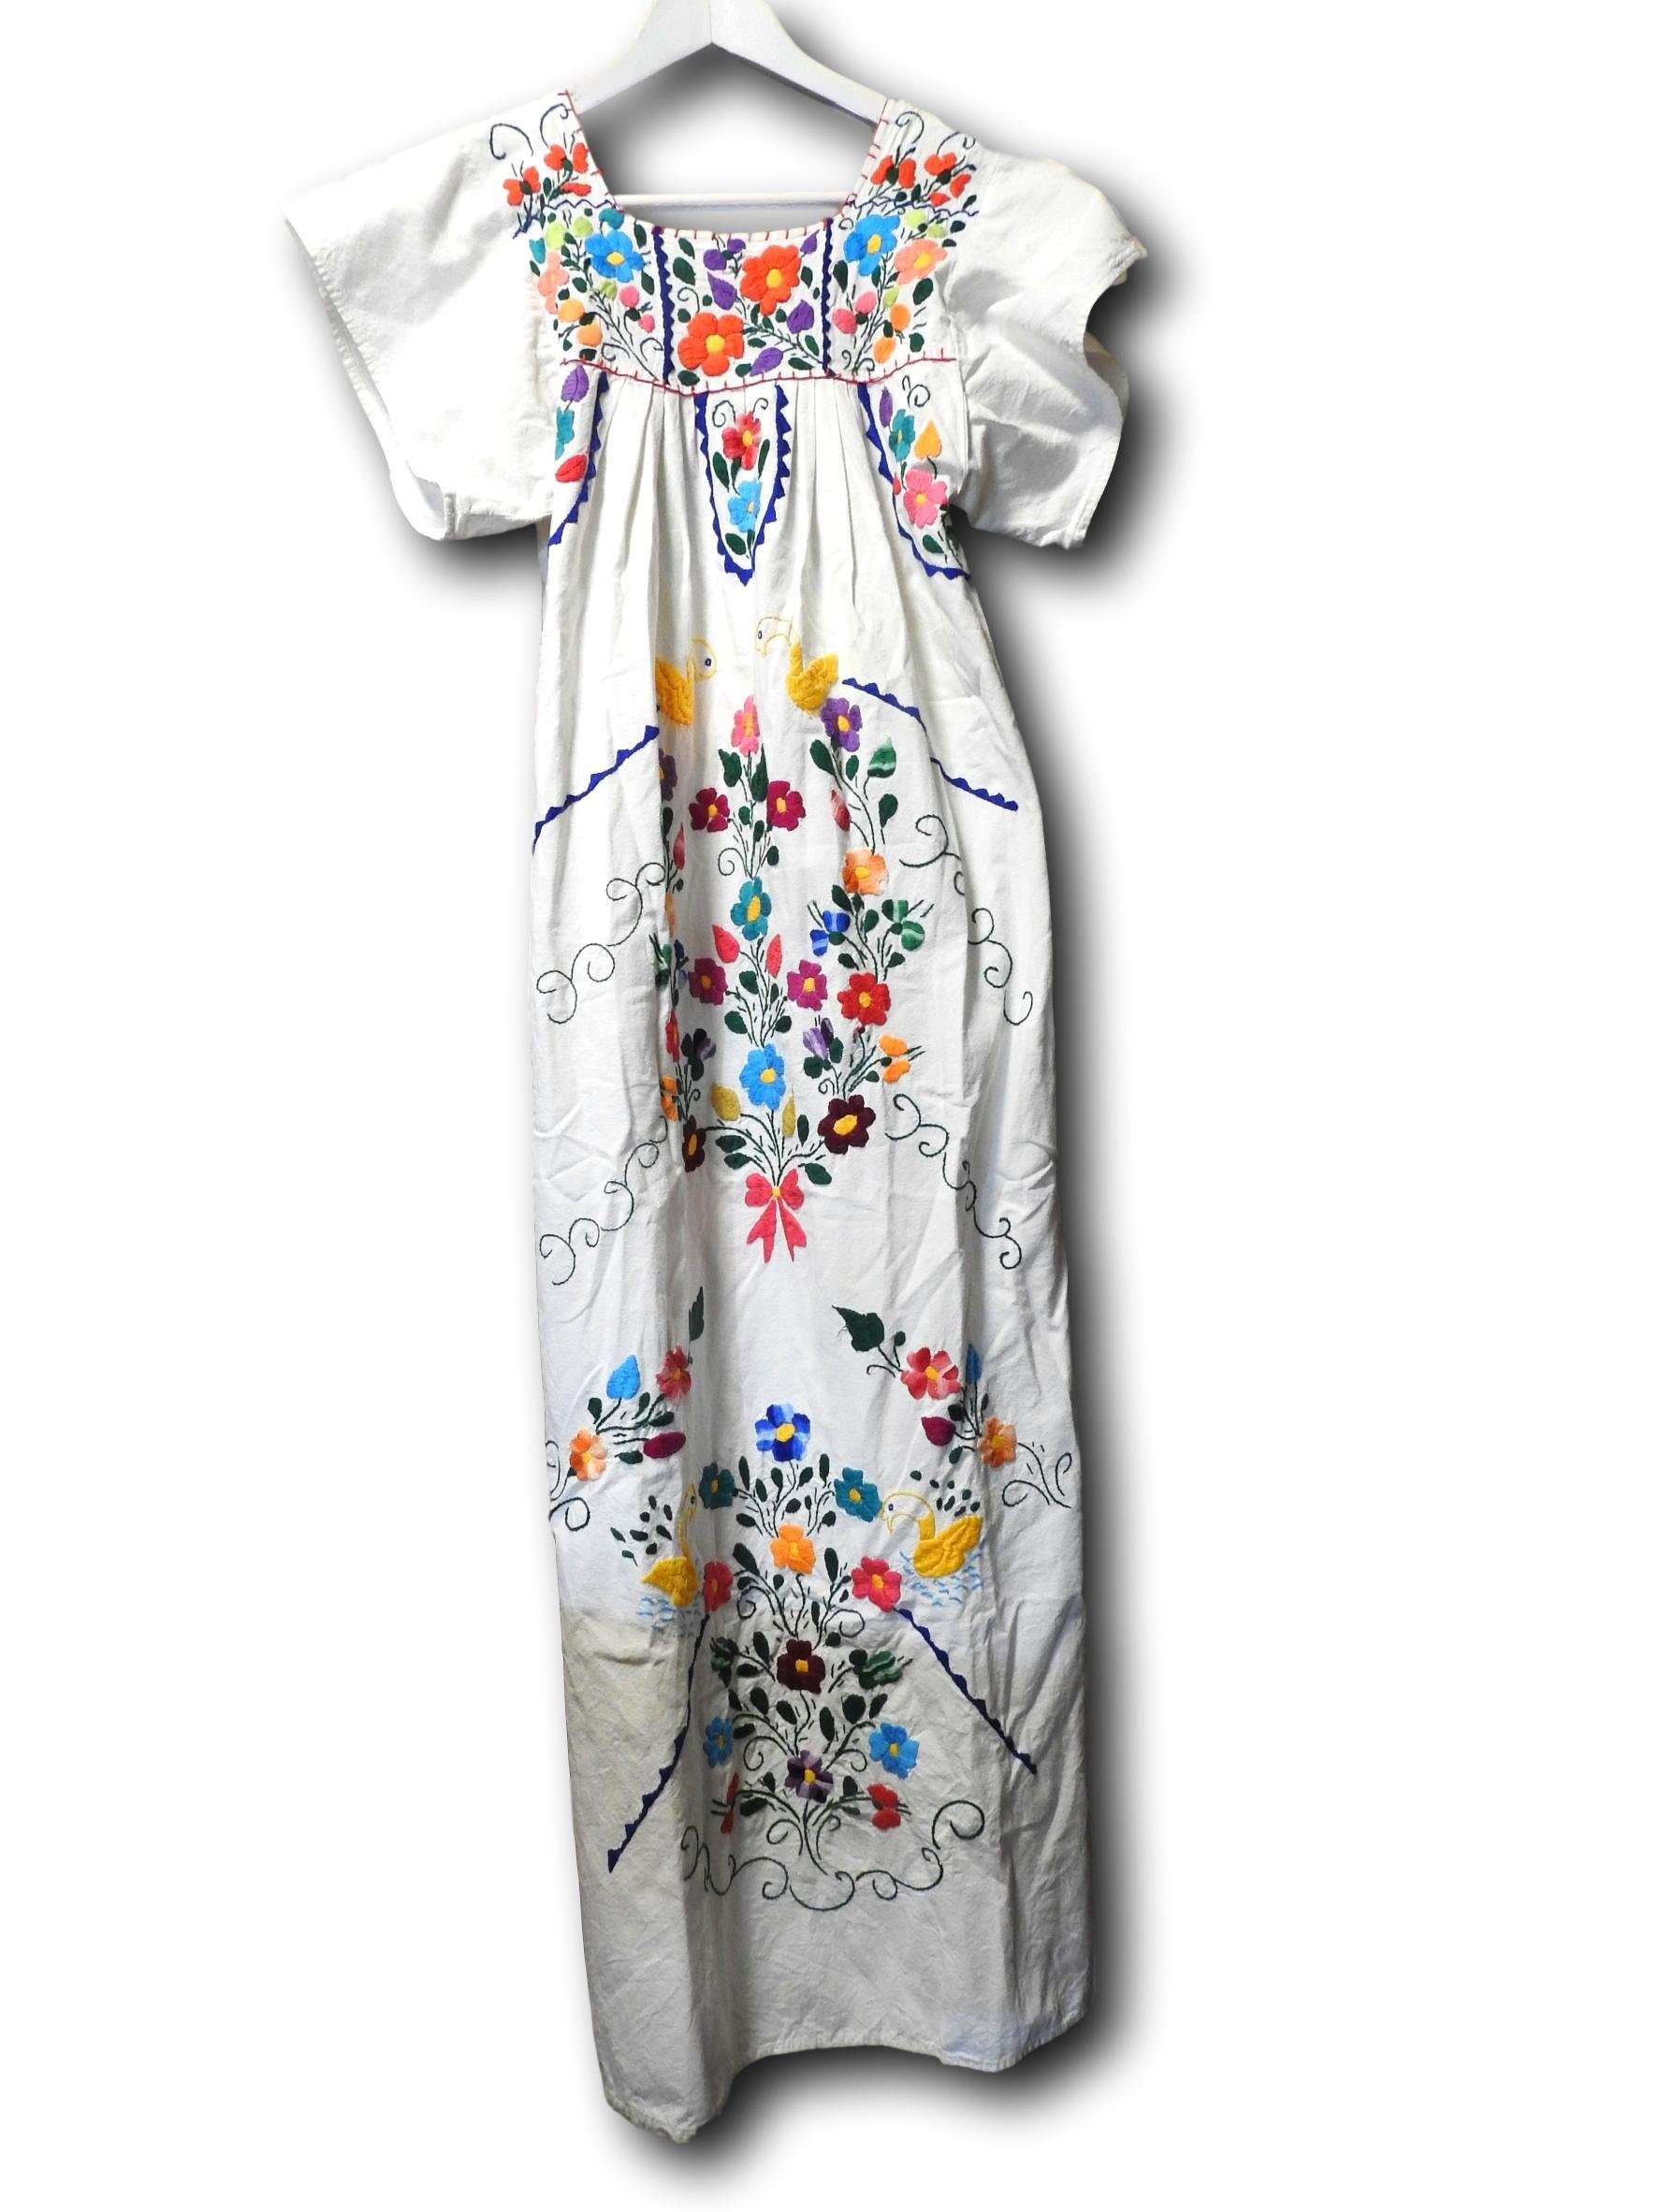 befea84c21573 Authentic Vintage Mexican embroidered dress. gallery photo ...